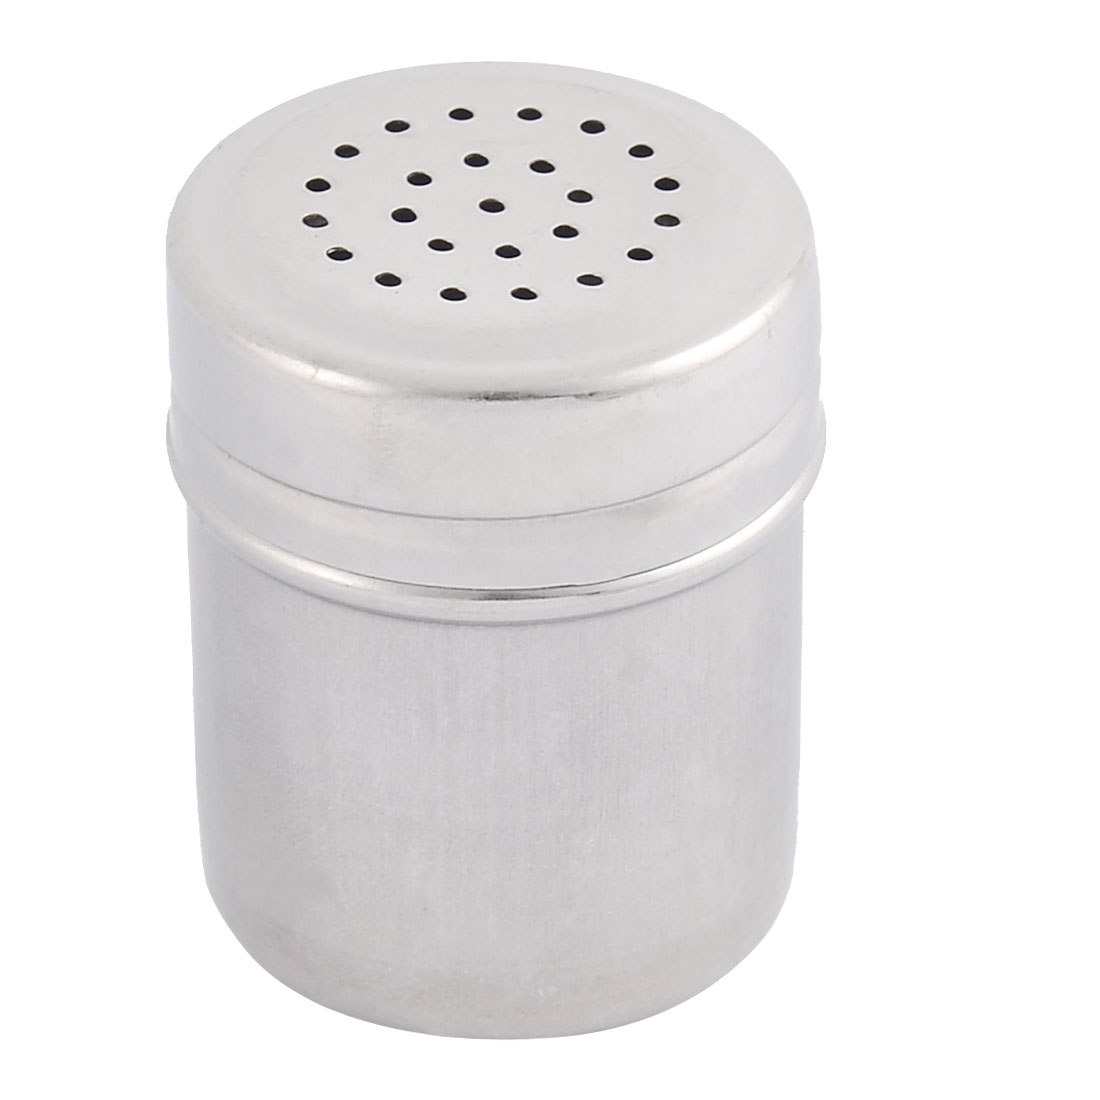 Household Kitchen Stainless Steel Irrotional Lid Cruet Bottle Chili Powder Holder Silver Tone